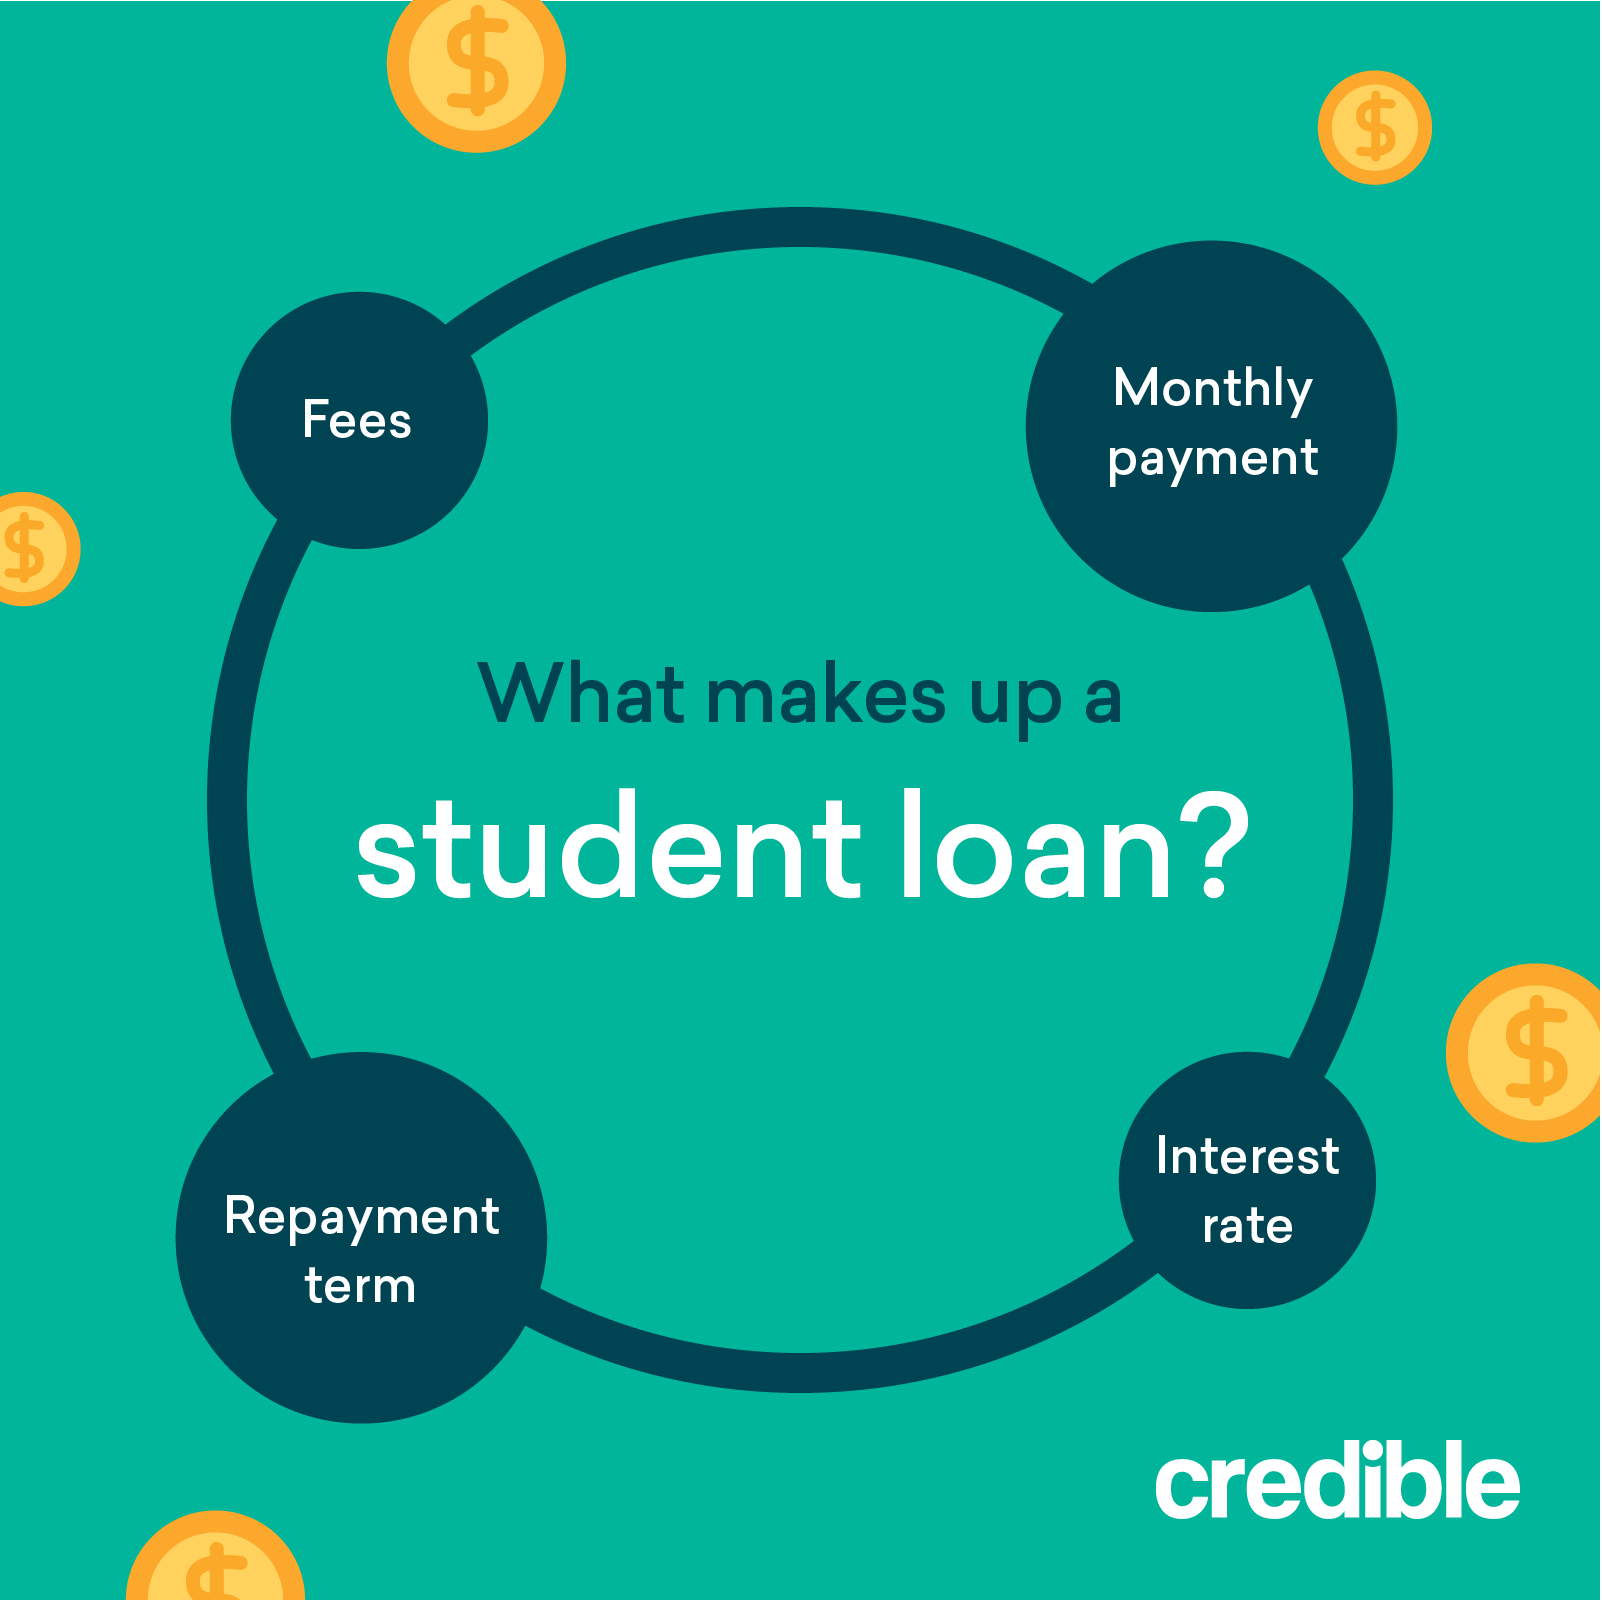 What makes up a student loan